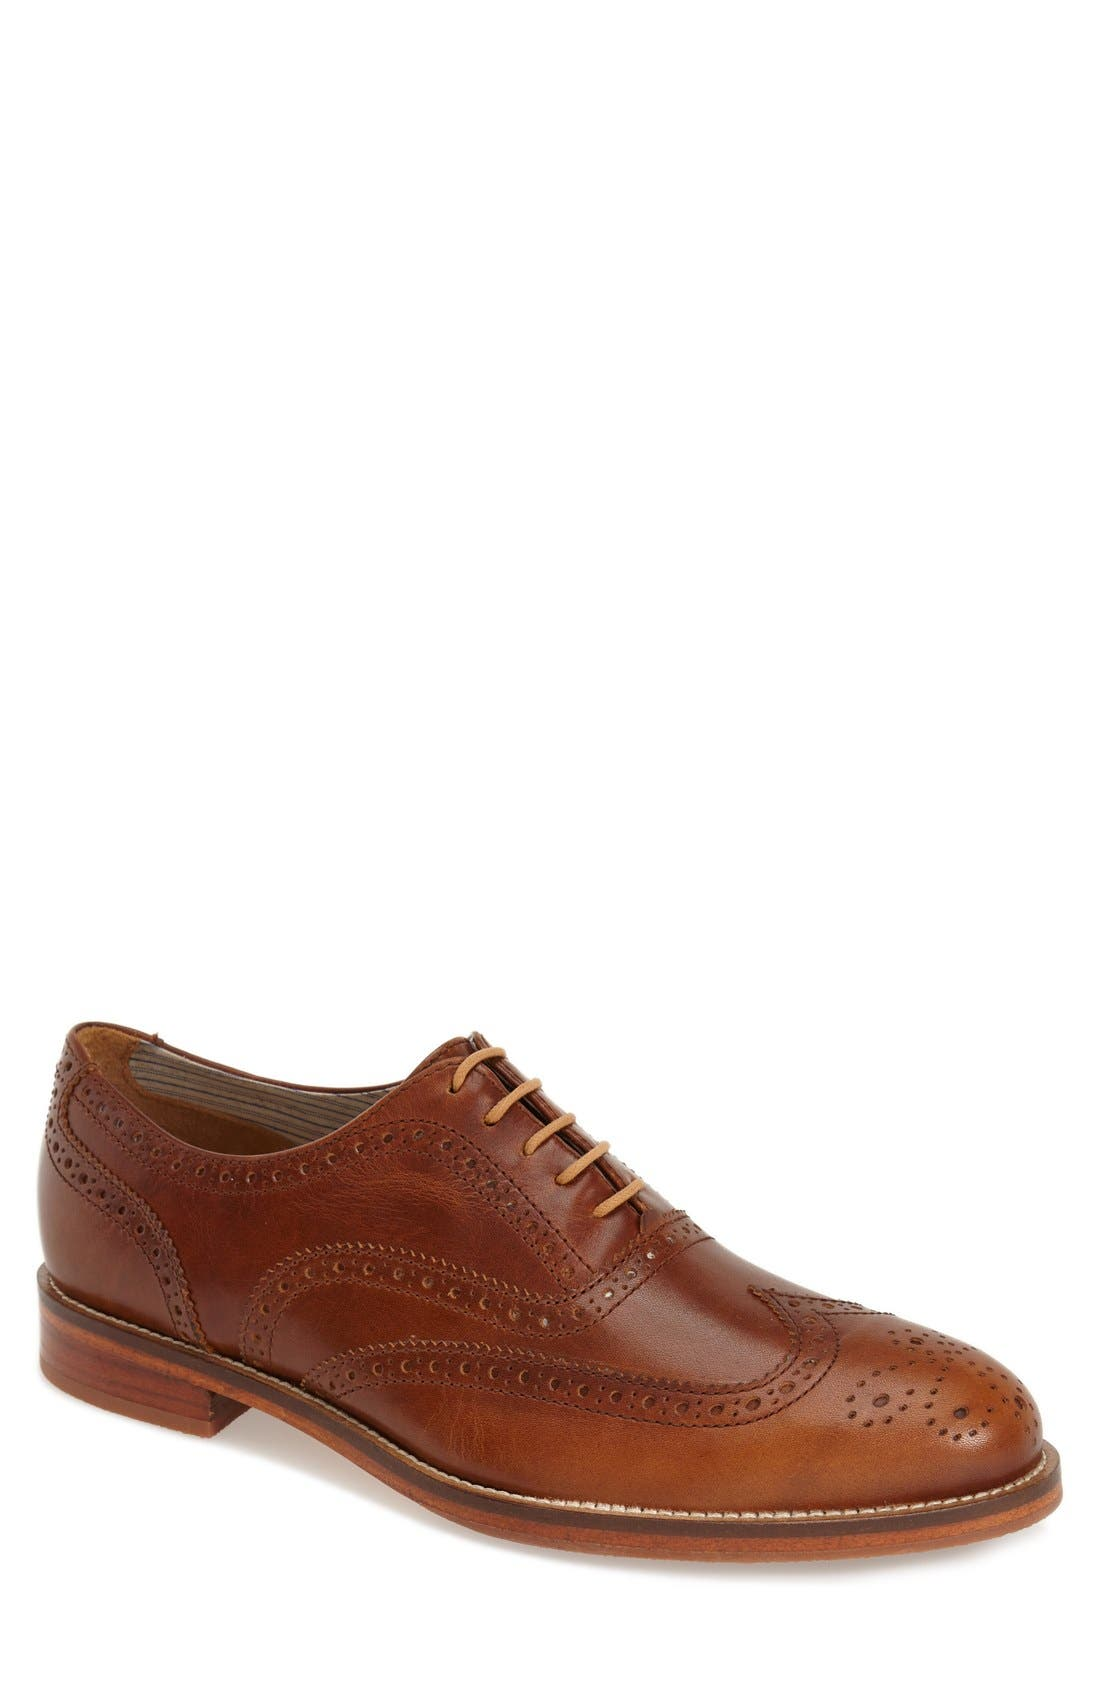 'Charlie Plus' Wingtip Oxford,                             Main thumbnail 1, color,                             BRASS LEATHER